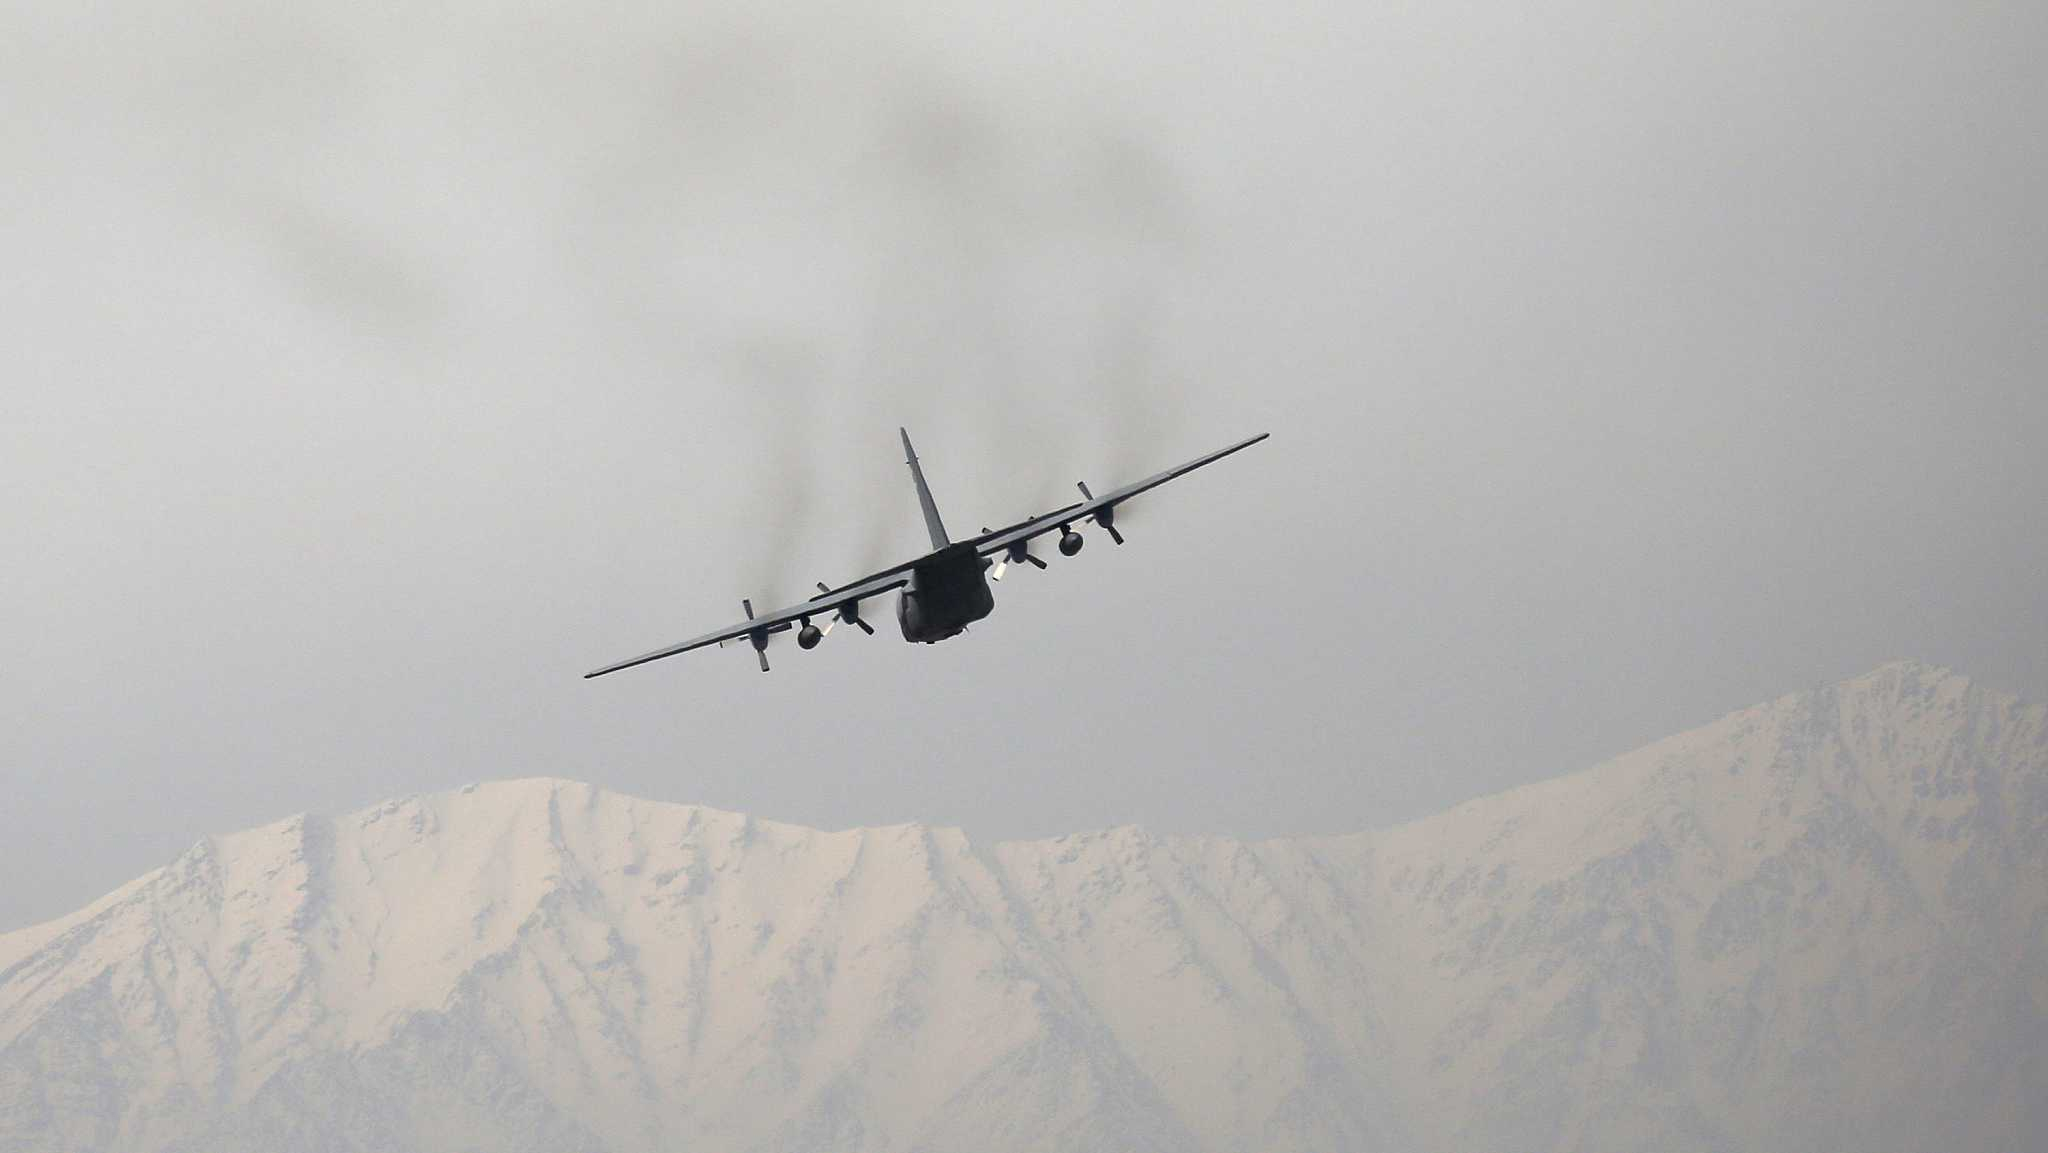 54 militants killed including two commanders in airstrikes in Afghanistan